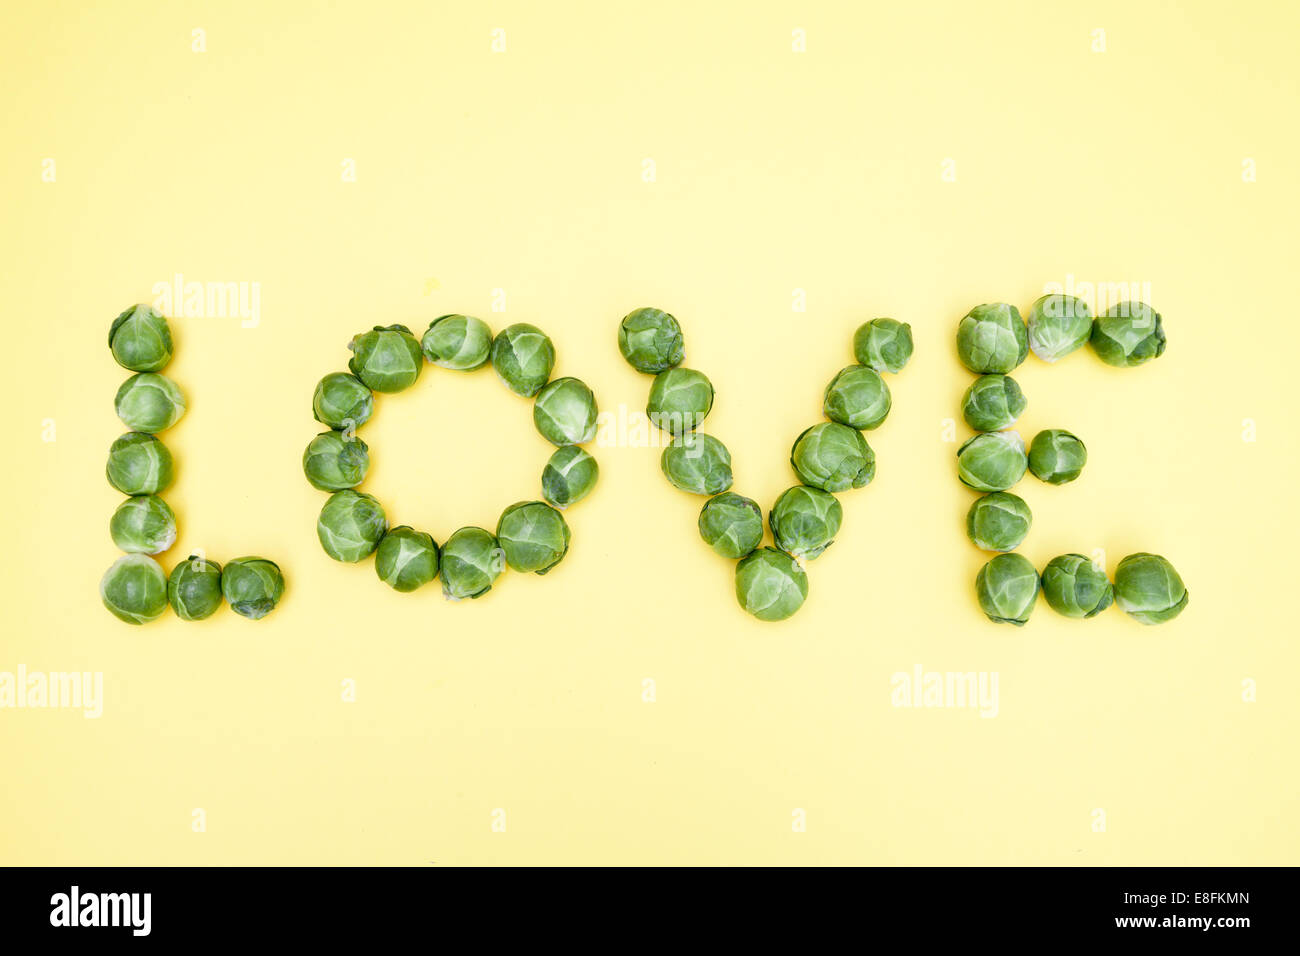 Brussels Sprouts Spelling Out Love - Stock Image